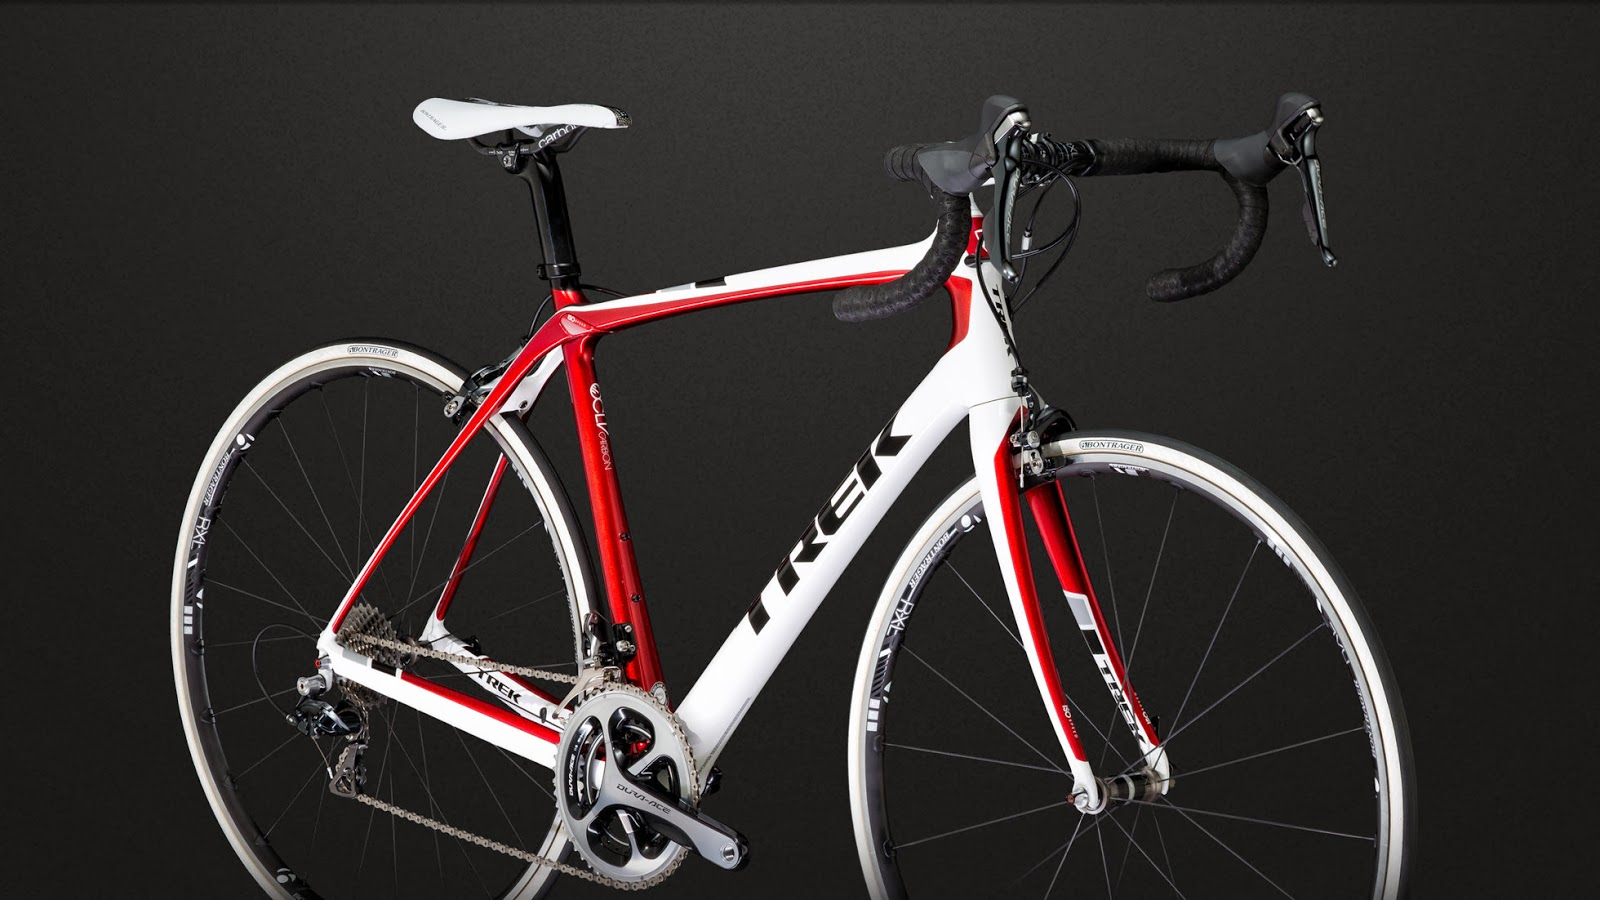 All About Road Bike: Trek Road Bike Guide and Sizing